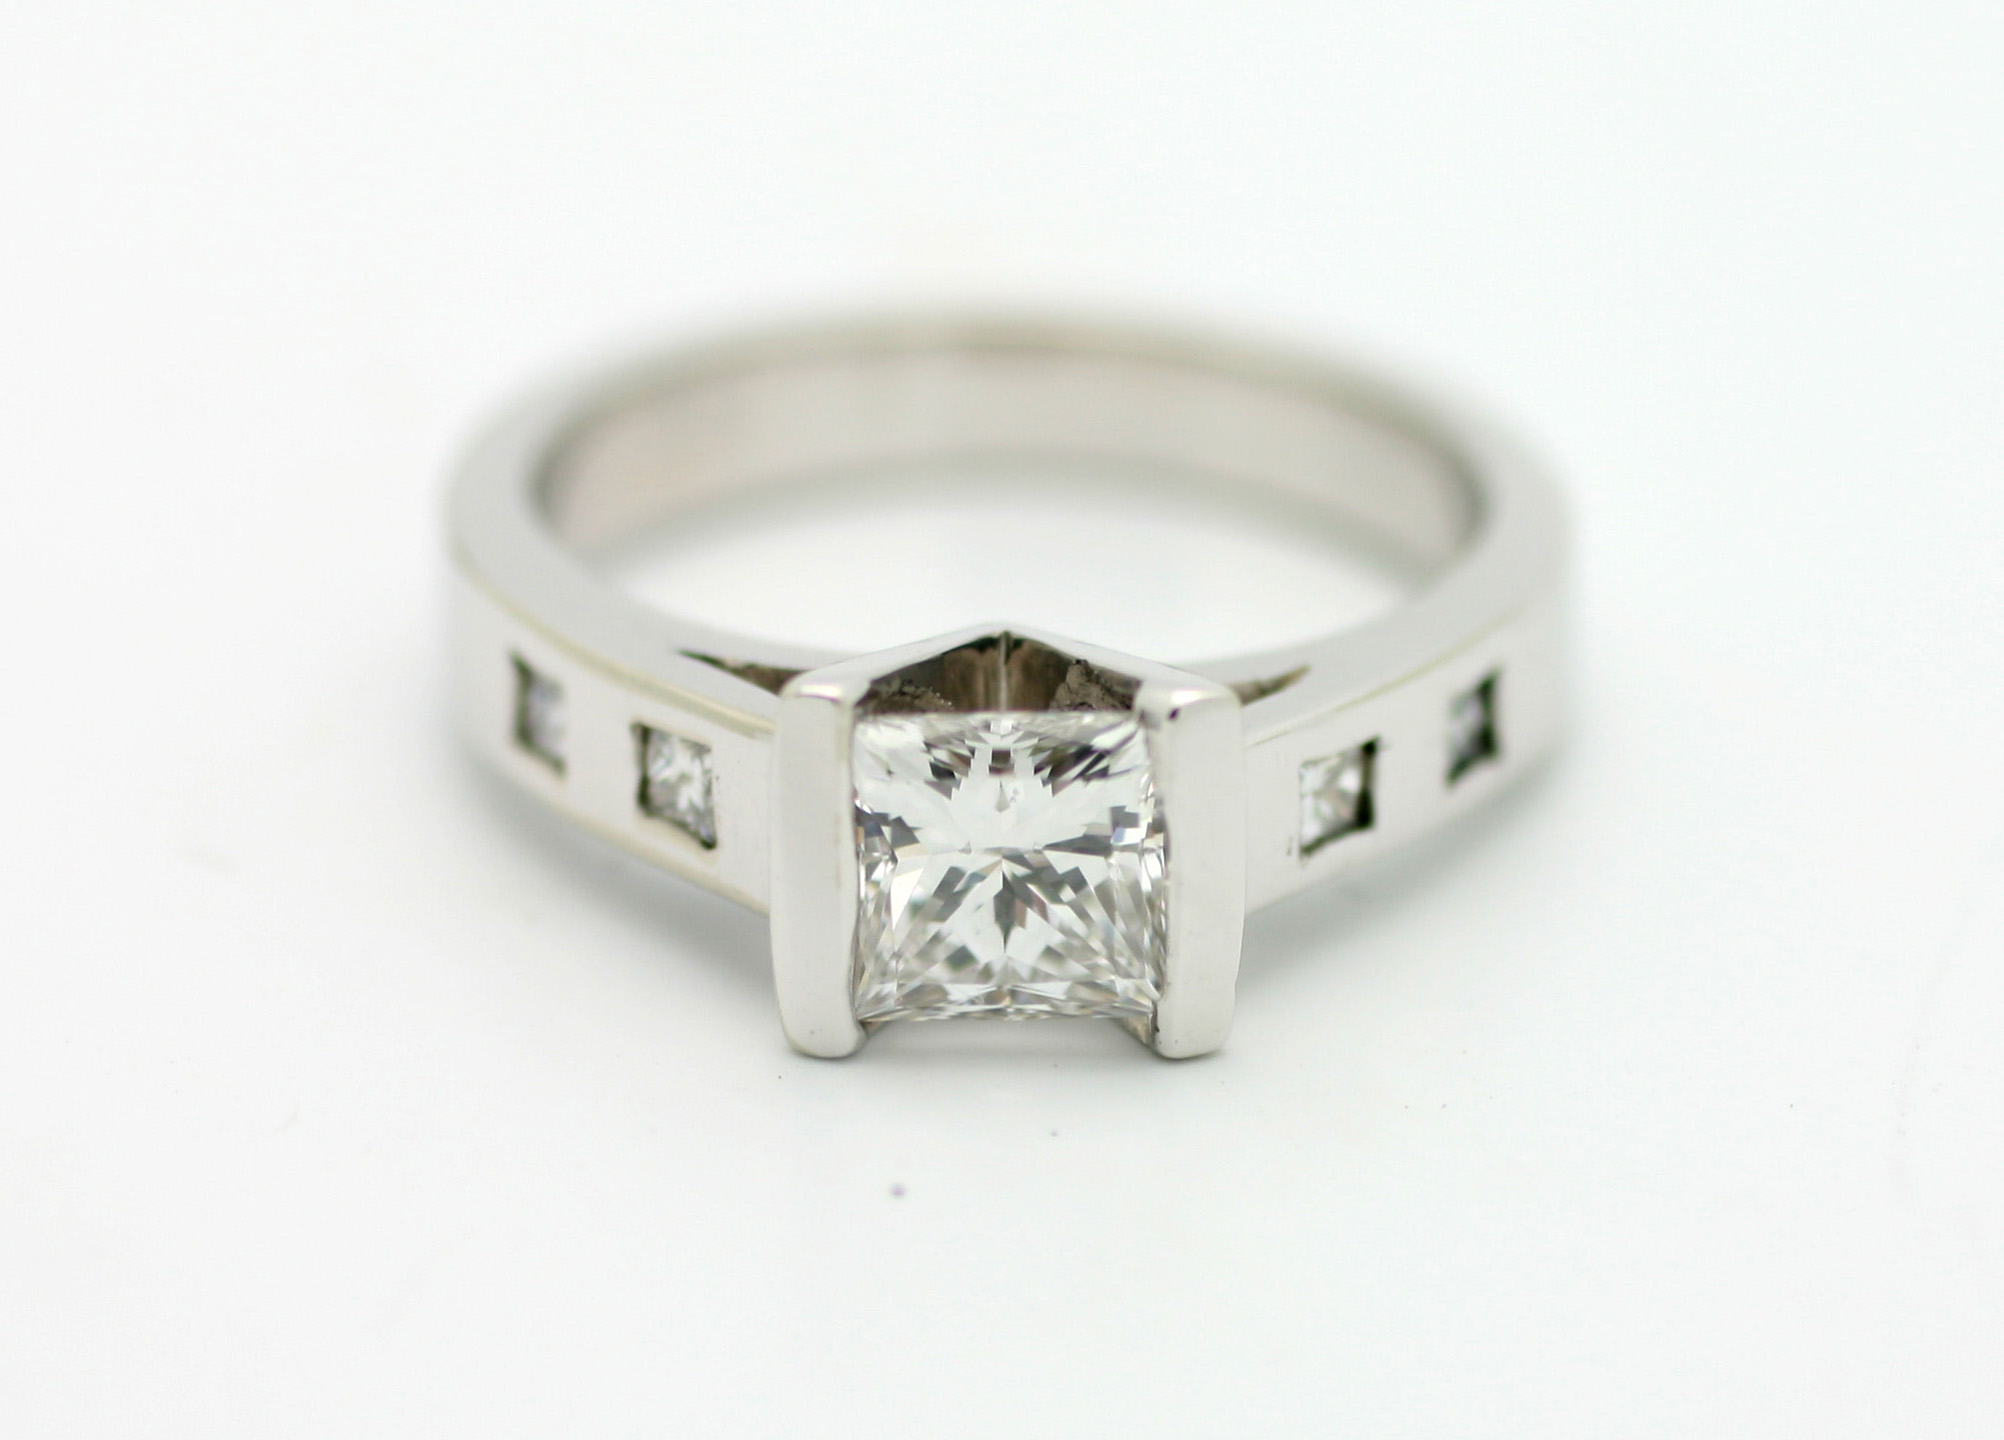 0.73ct princess cut diamond center stone set in a V-shape channel, shanks set with 4 gypsy set princess cut diamonds. 14kt white gold.  Starting at $4900 for this stone size and quality  Can be customizable with any stone, size, metal etc.